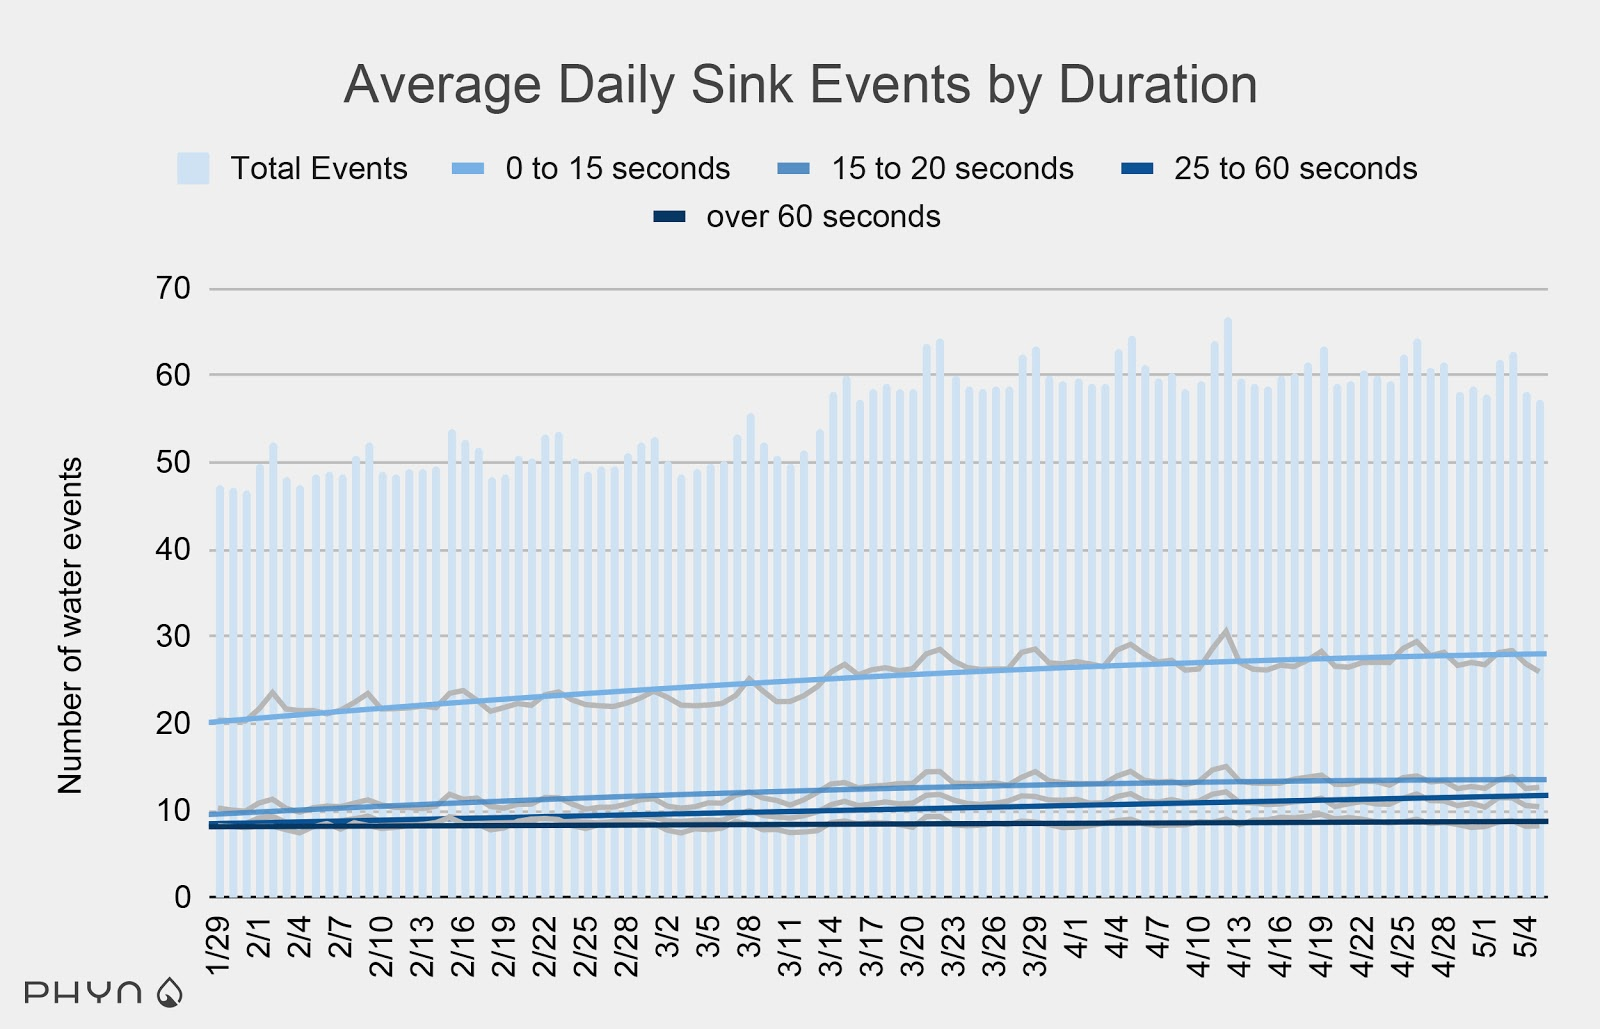 Average Daily Sink Events by Duration